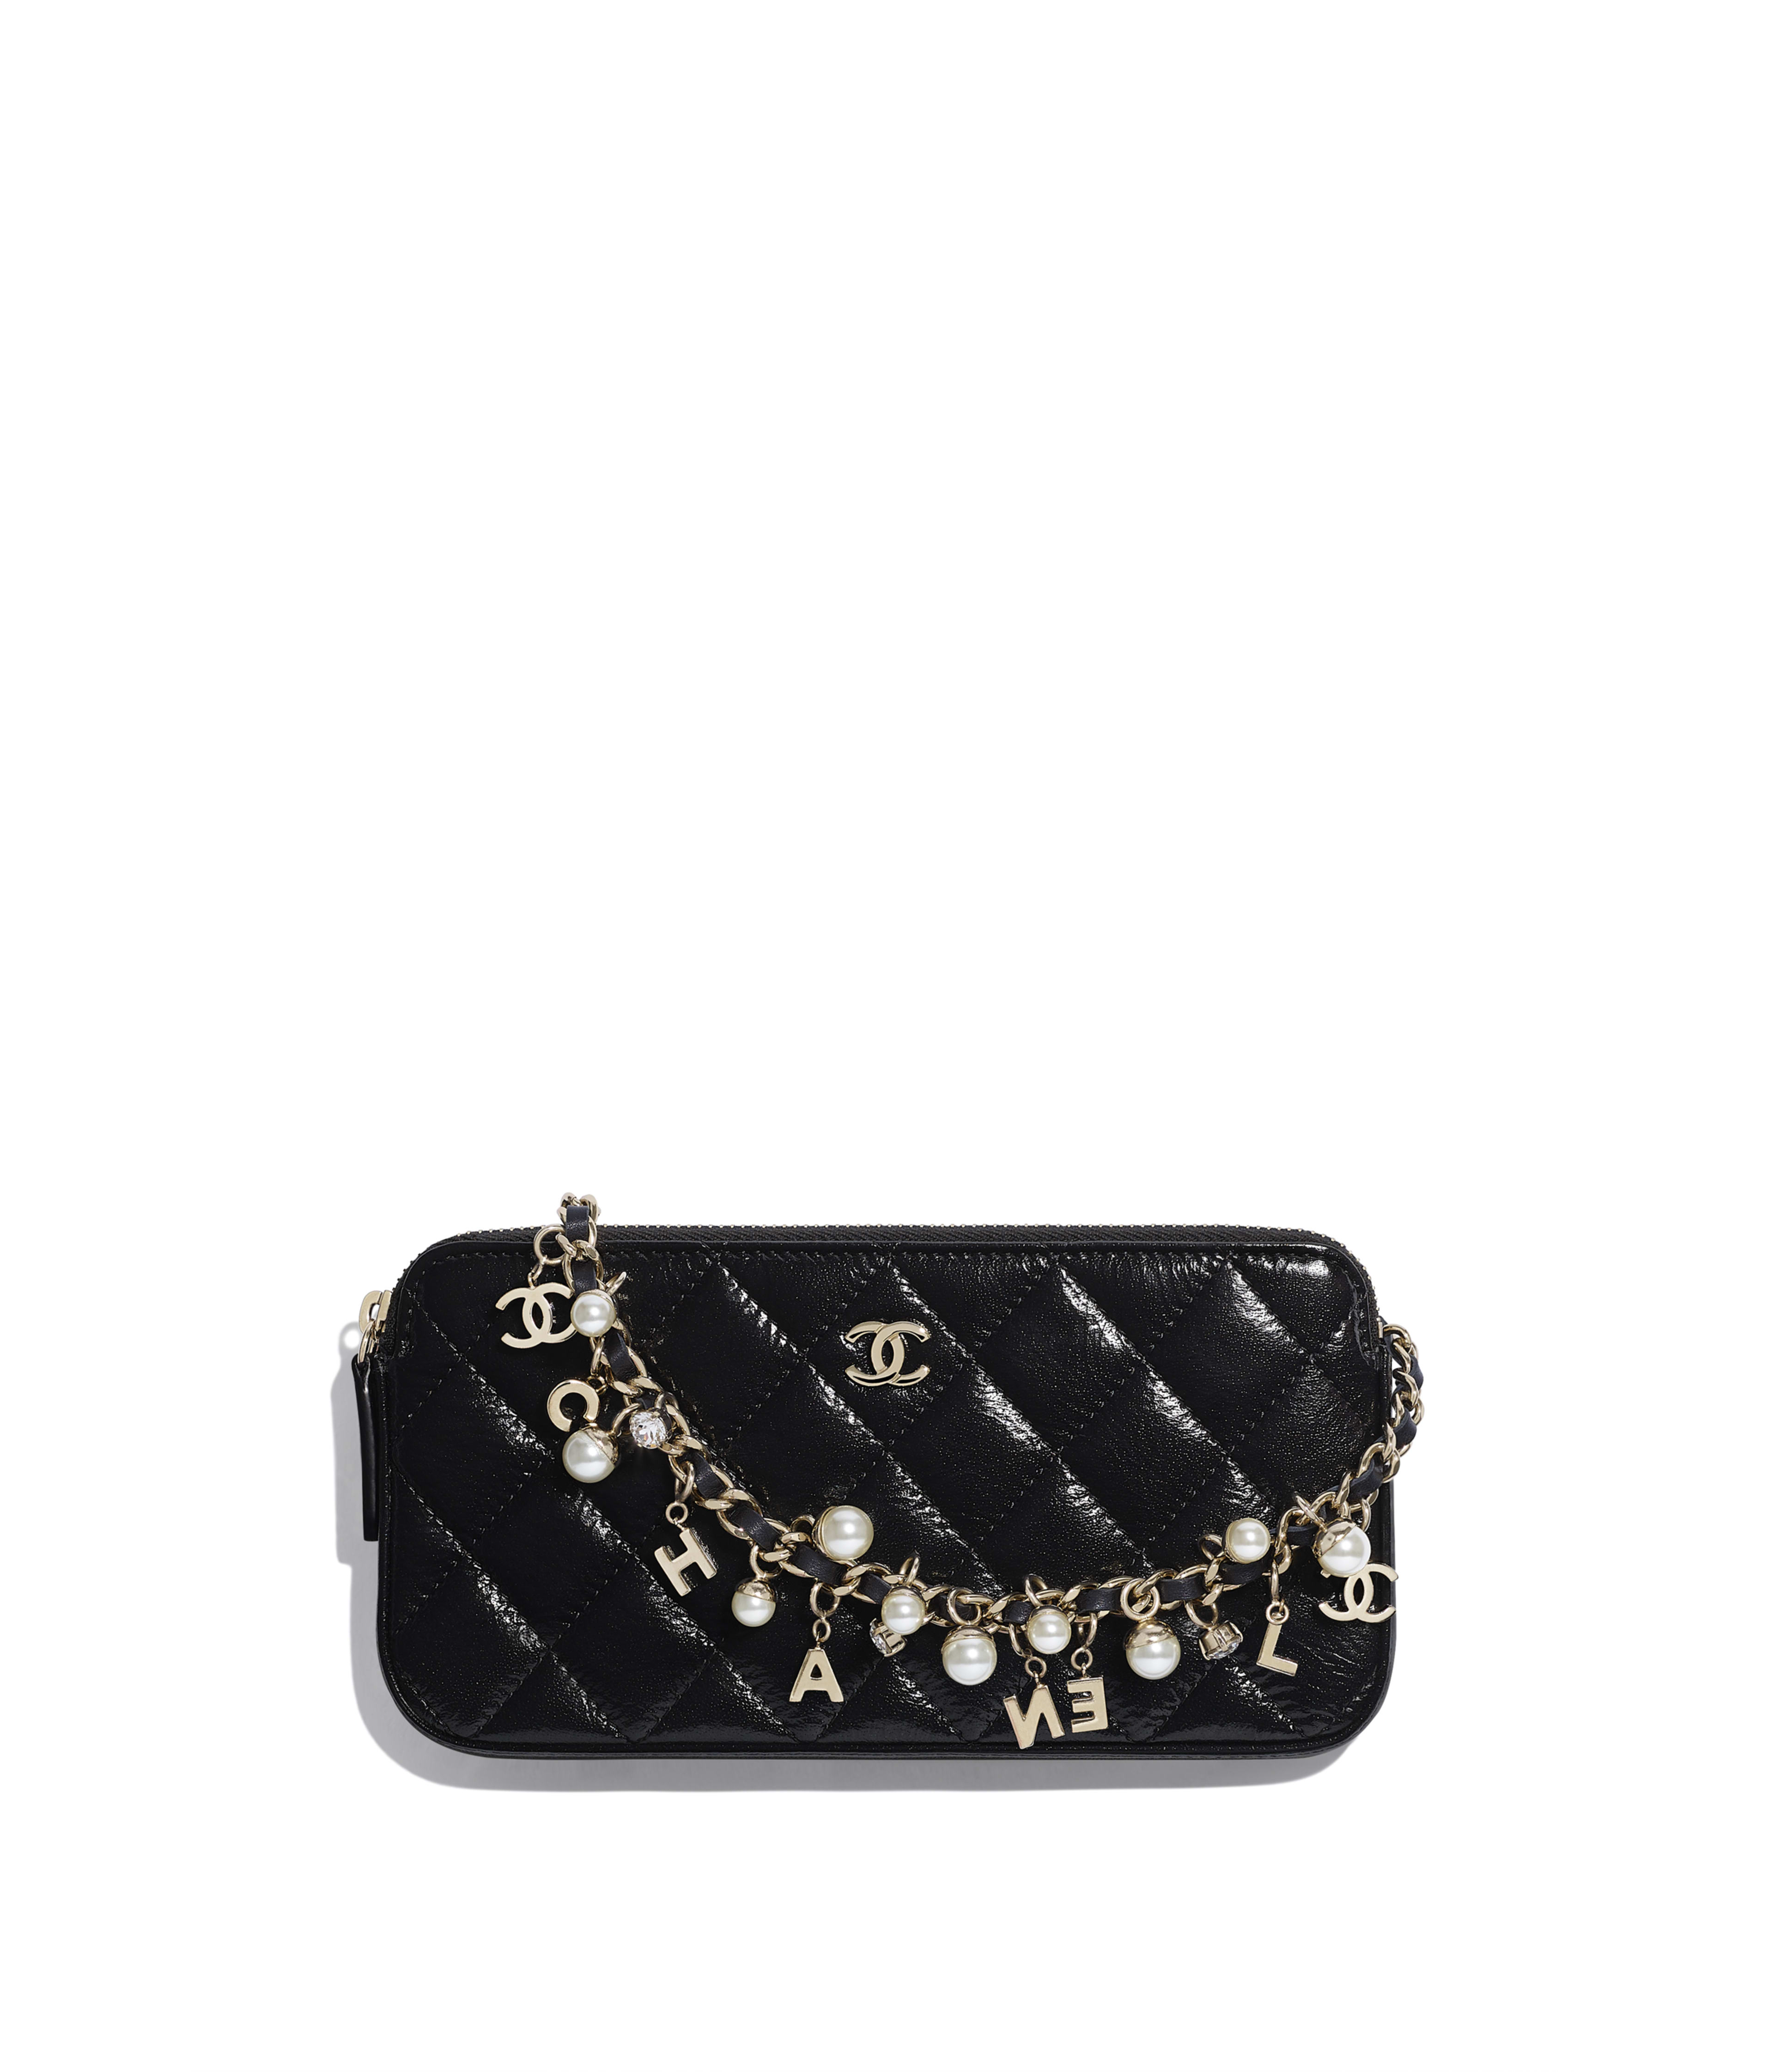 f39bfc60abcb Chanel Wallet Clutch - Best Photo Wallet Justiceforkenny.Org